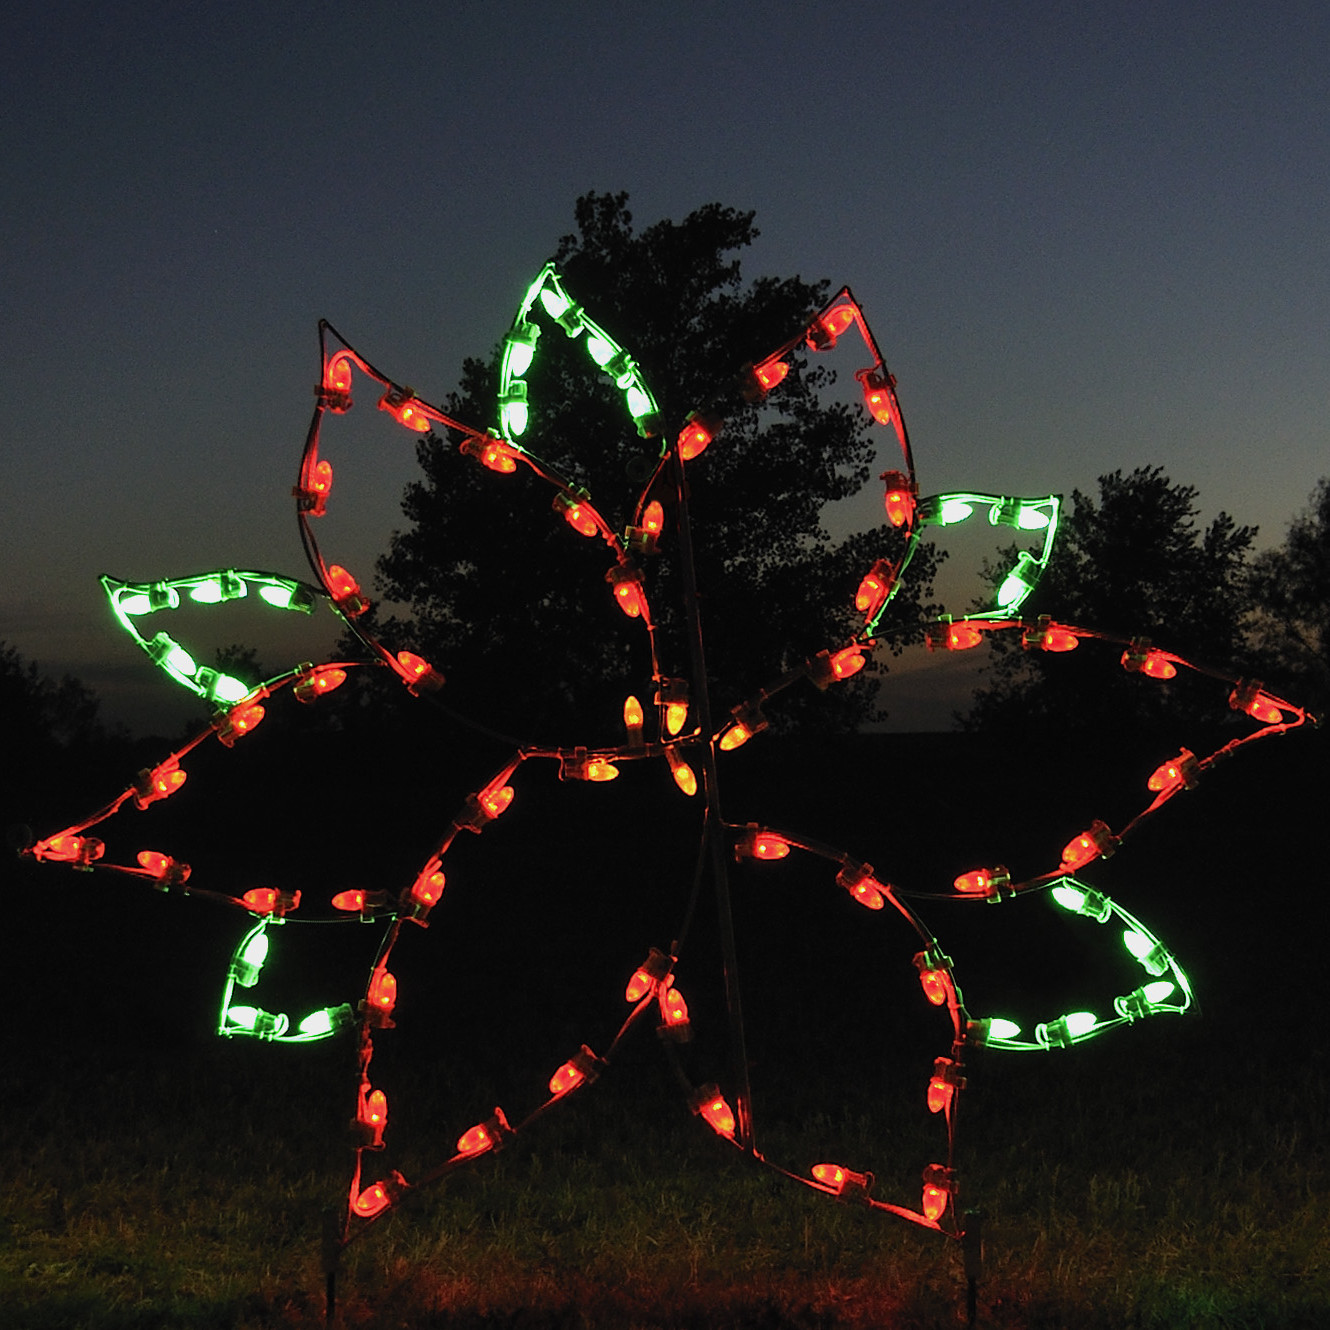 A Collection of Outdoor Christmas Light Displays 7